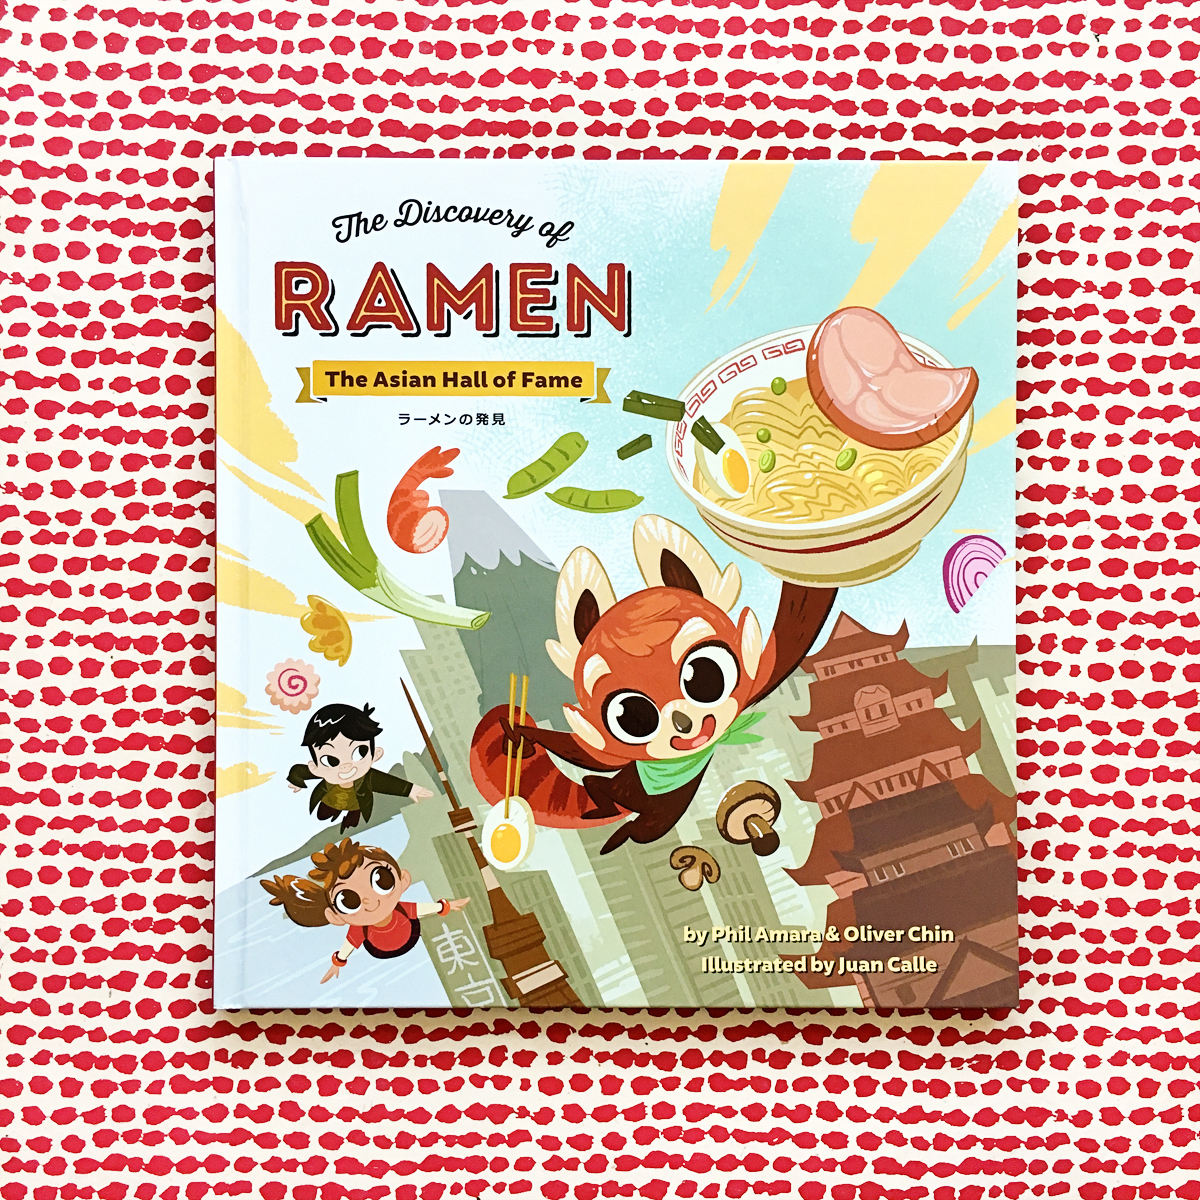 The Discovery of Ramen: The Asian Hall of Fame | Books For Diversity